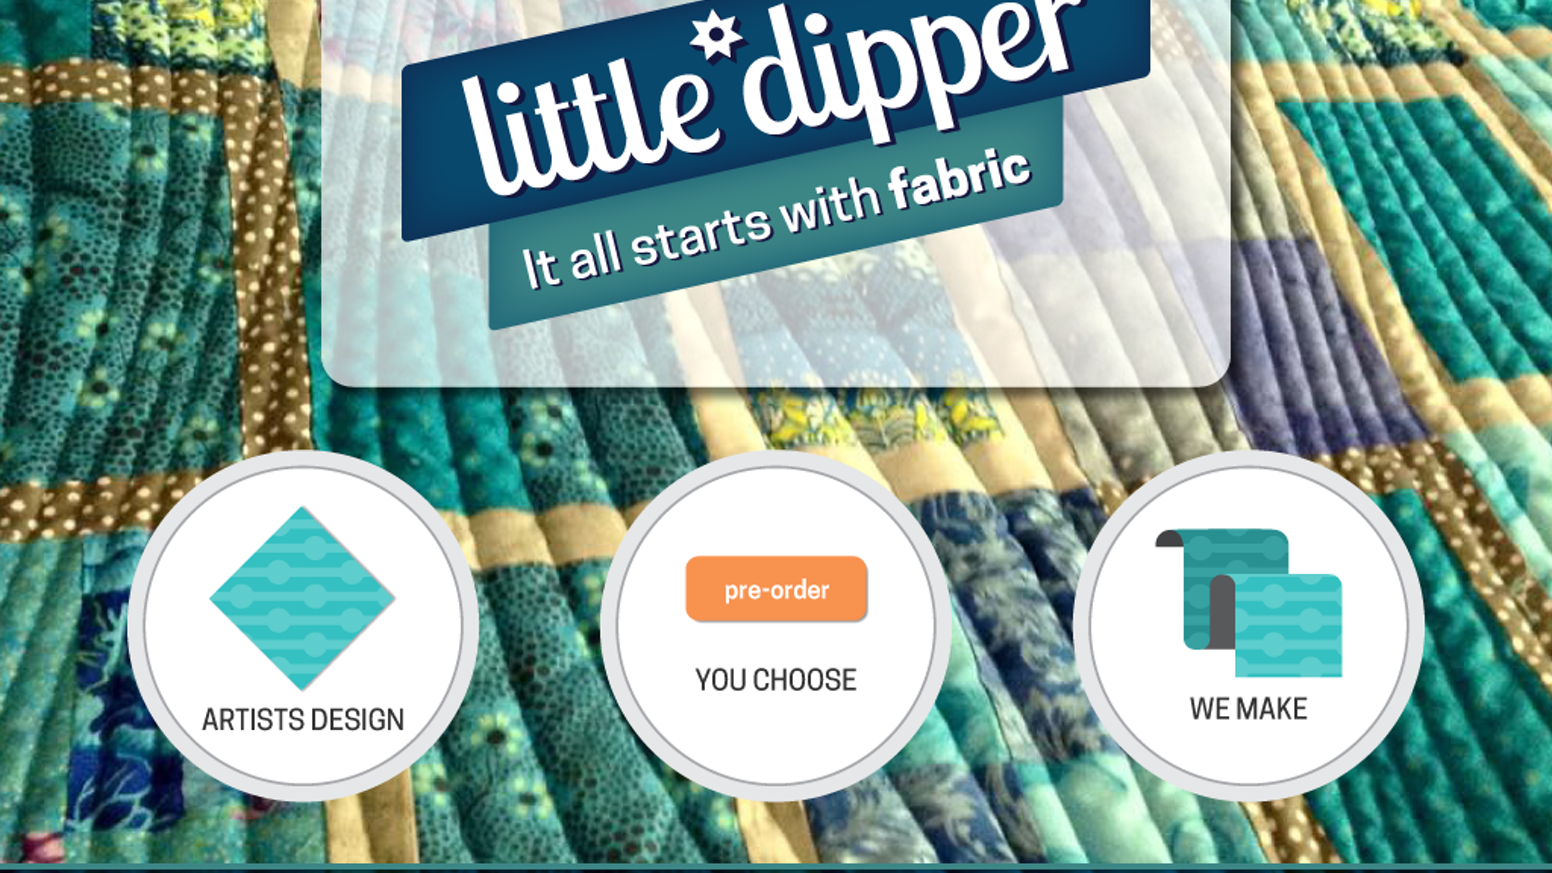 You choose which fabrics we make!